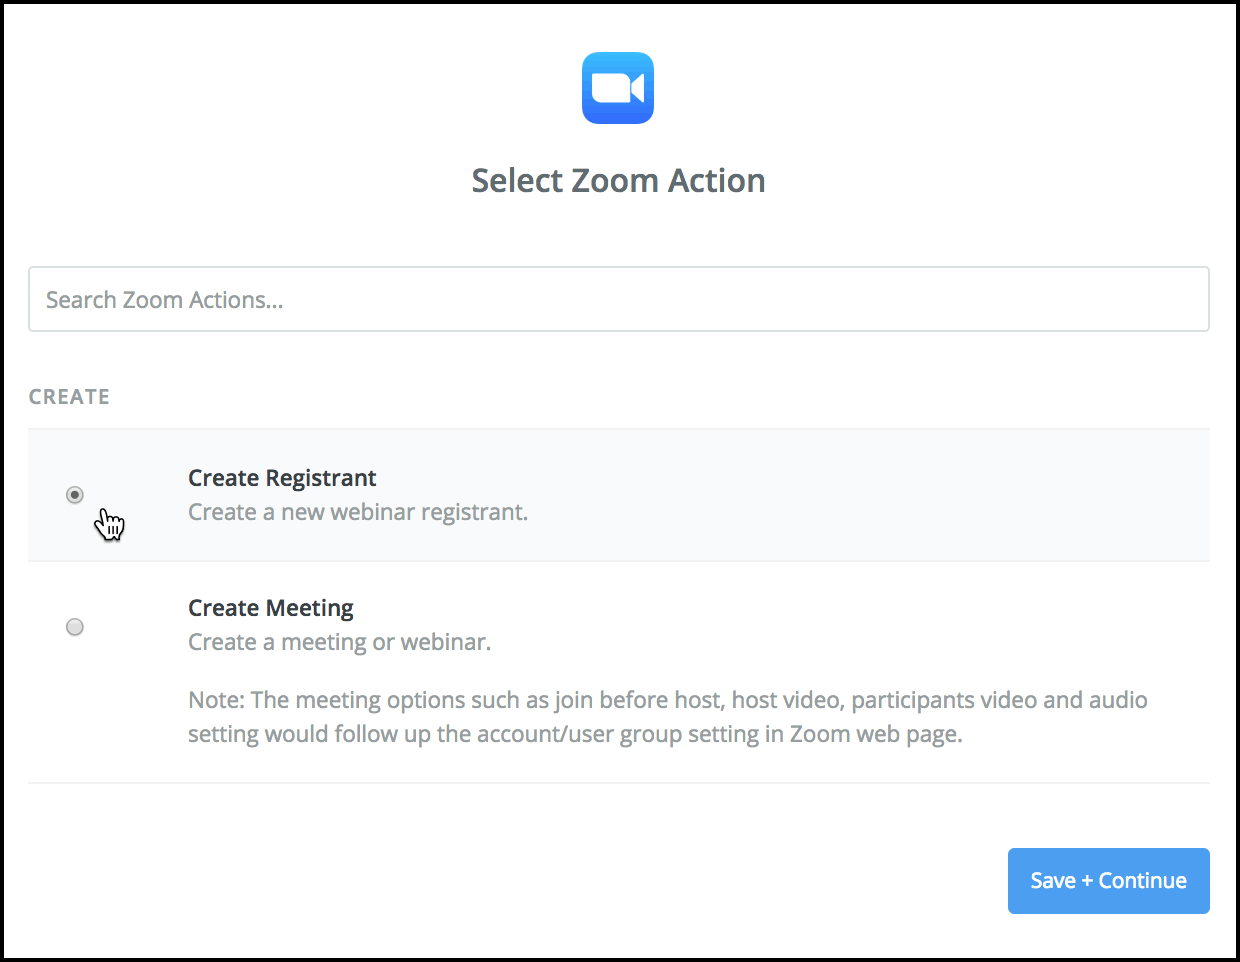 select-zoom-action